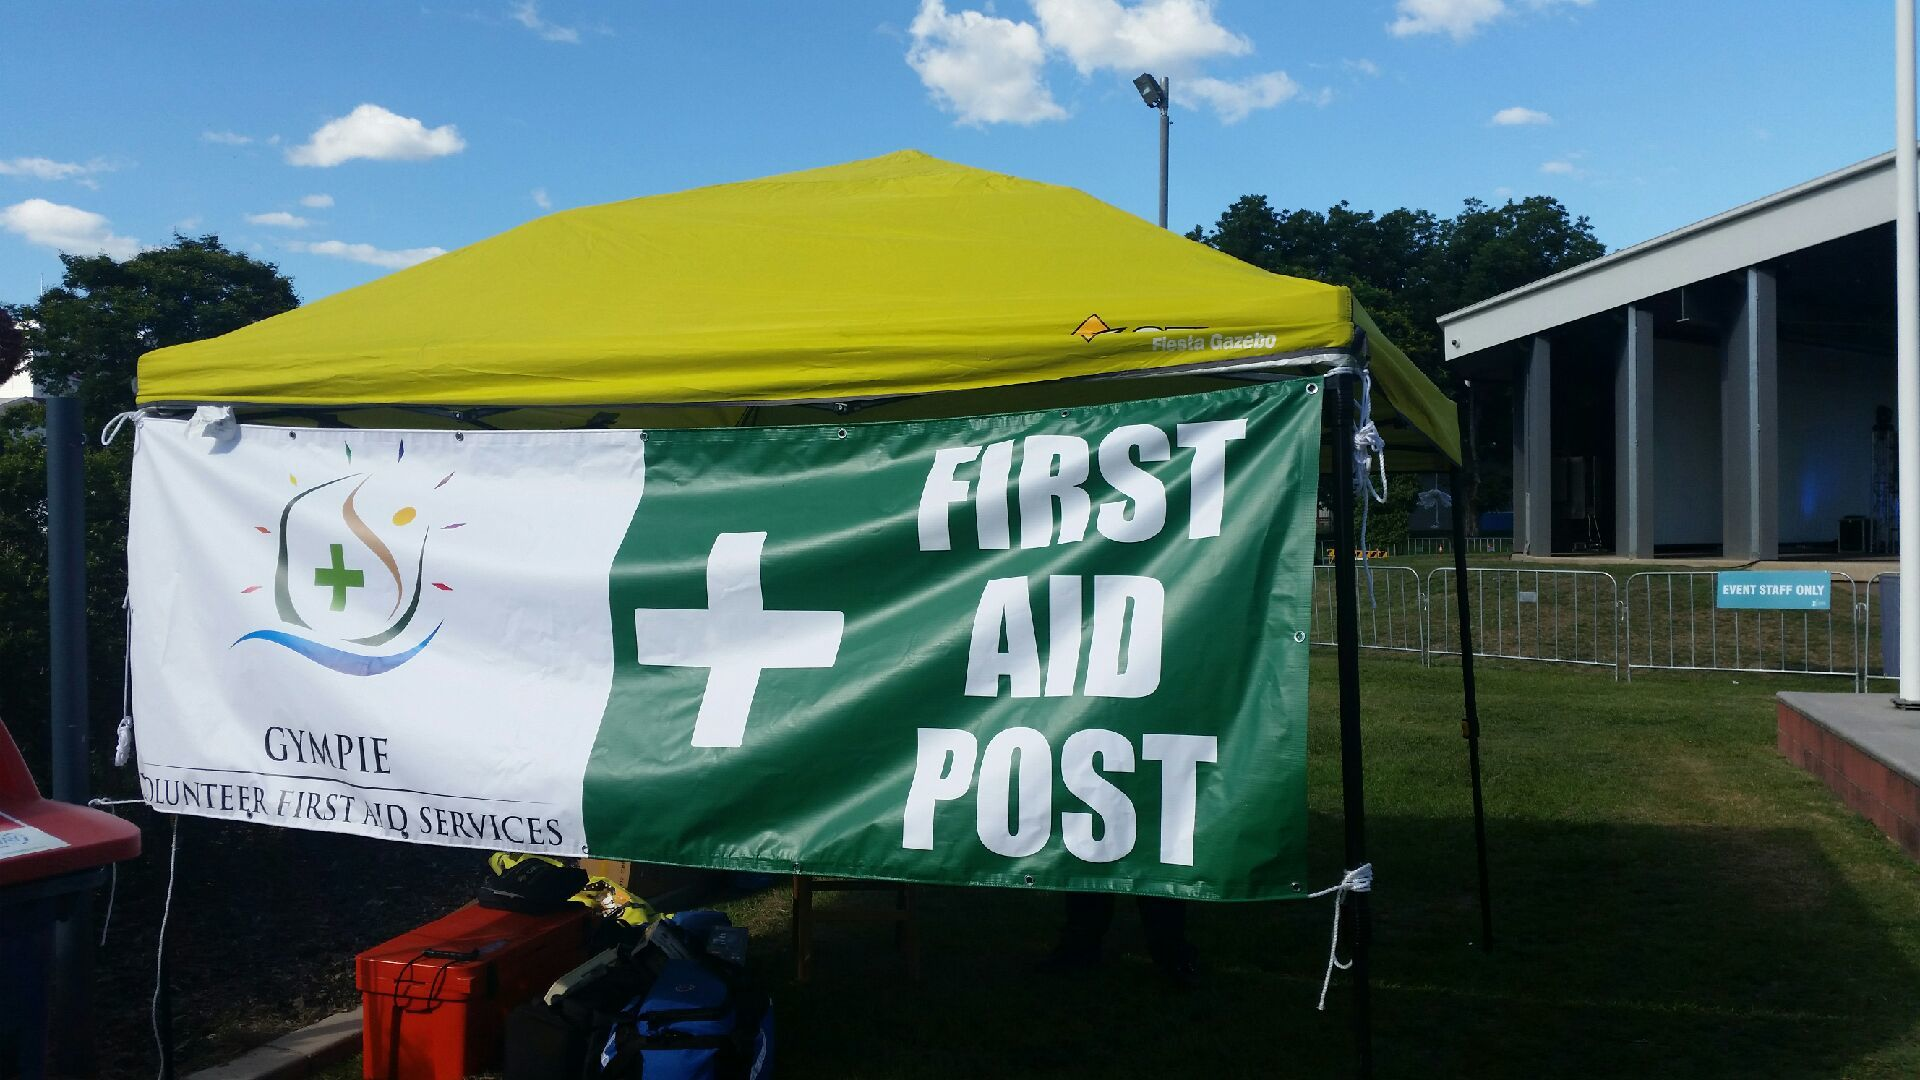 Gympie Volunteer First Aid Services